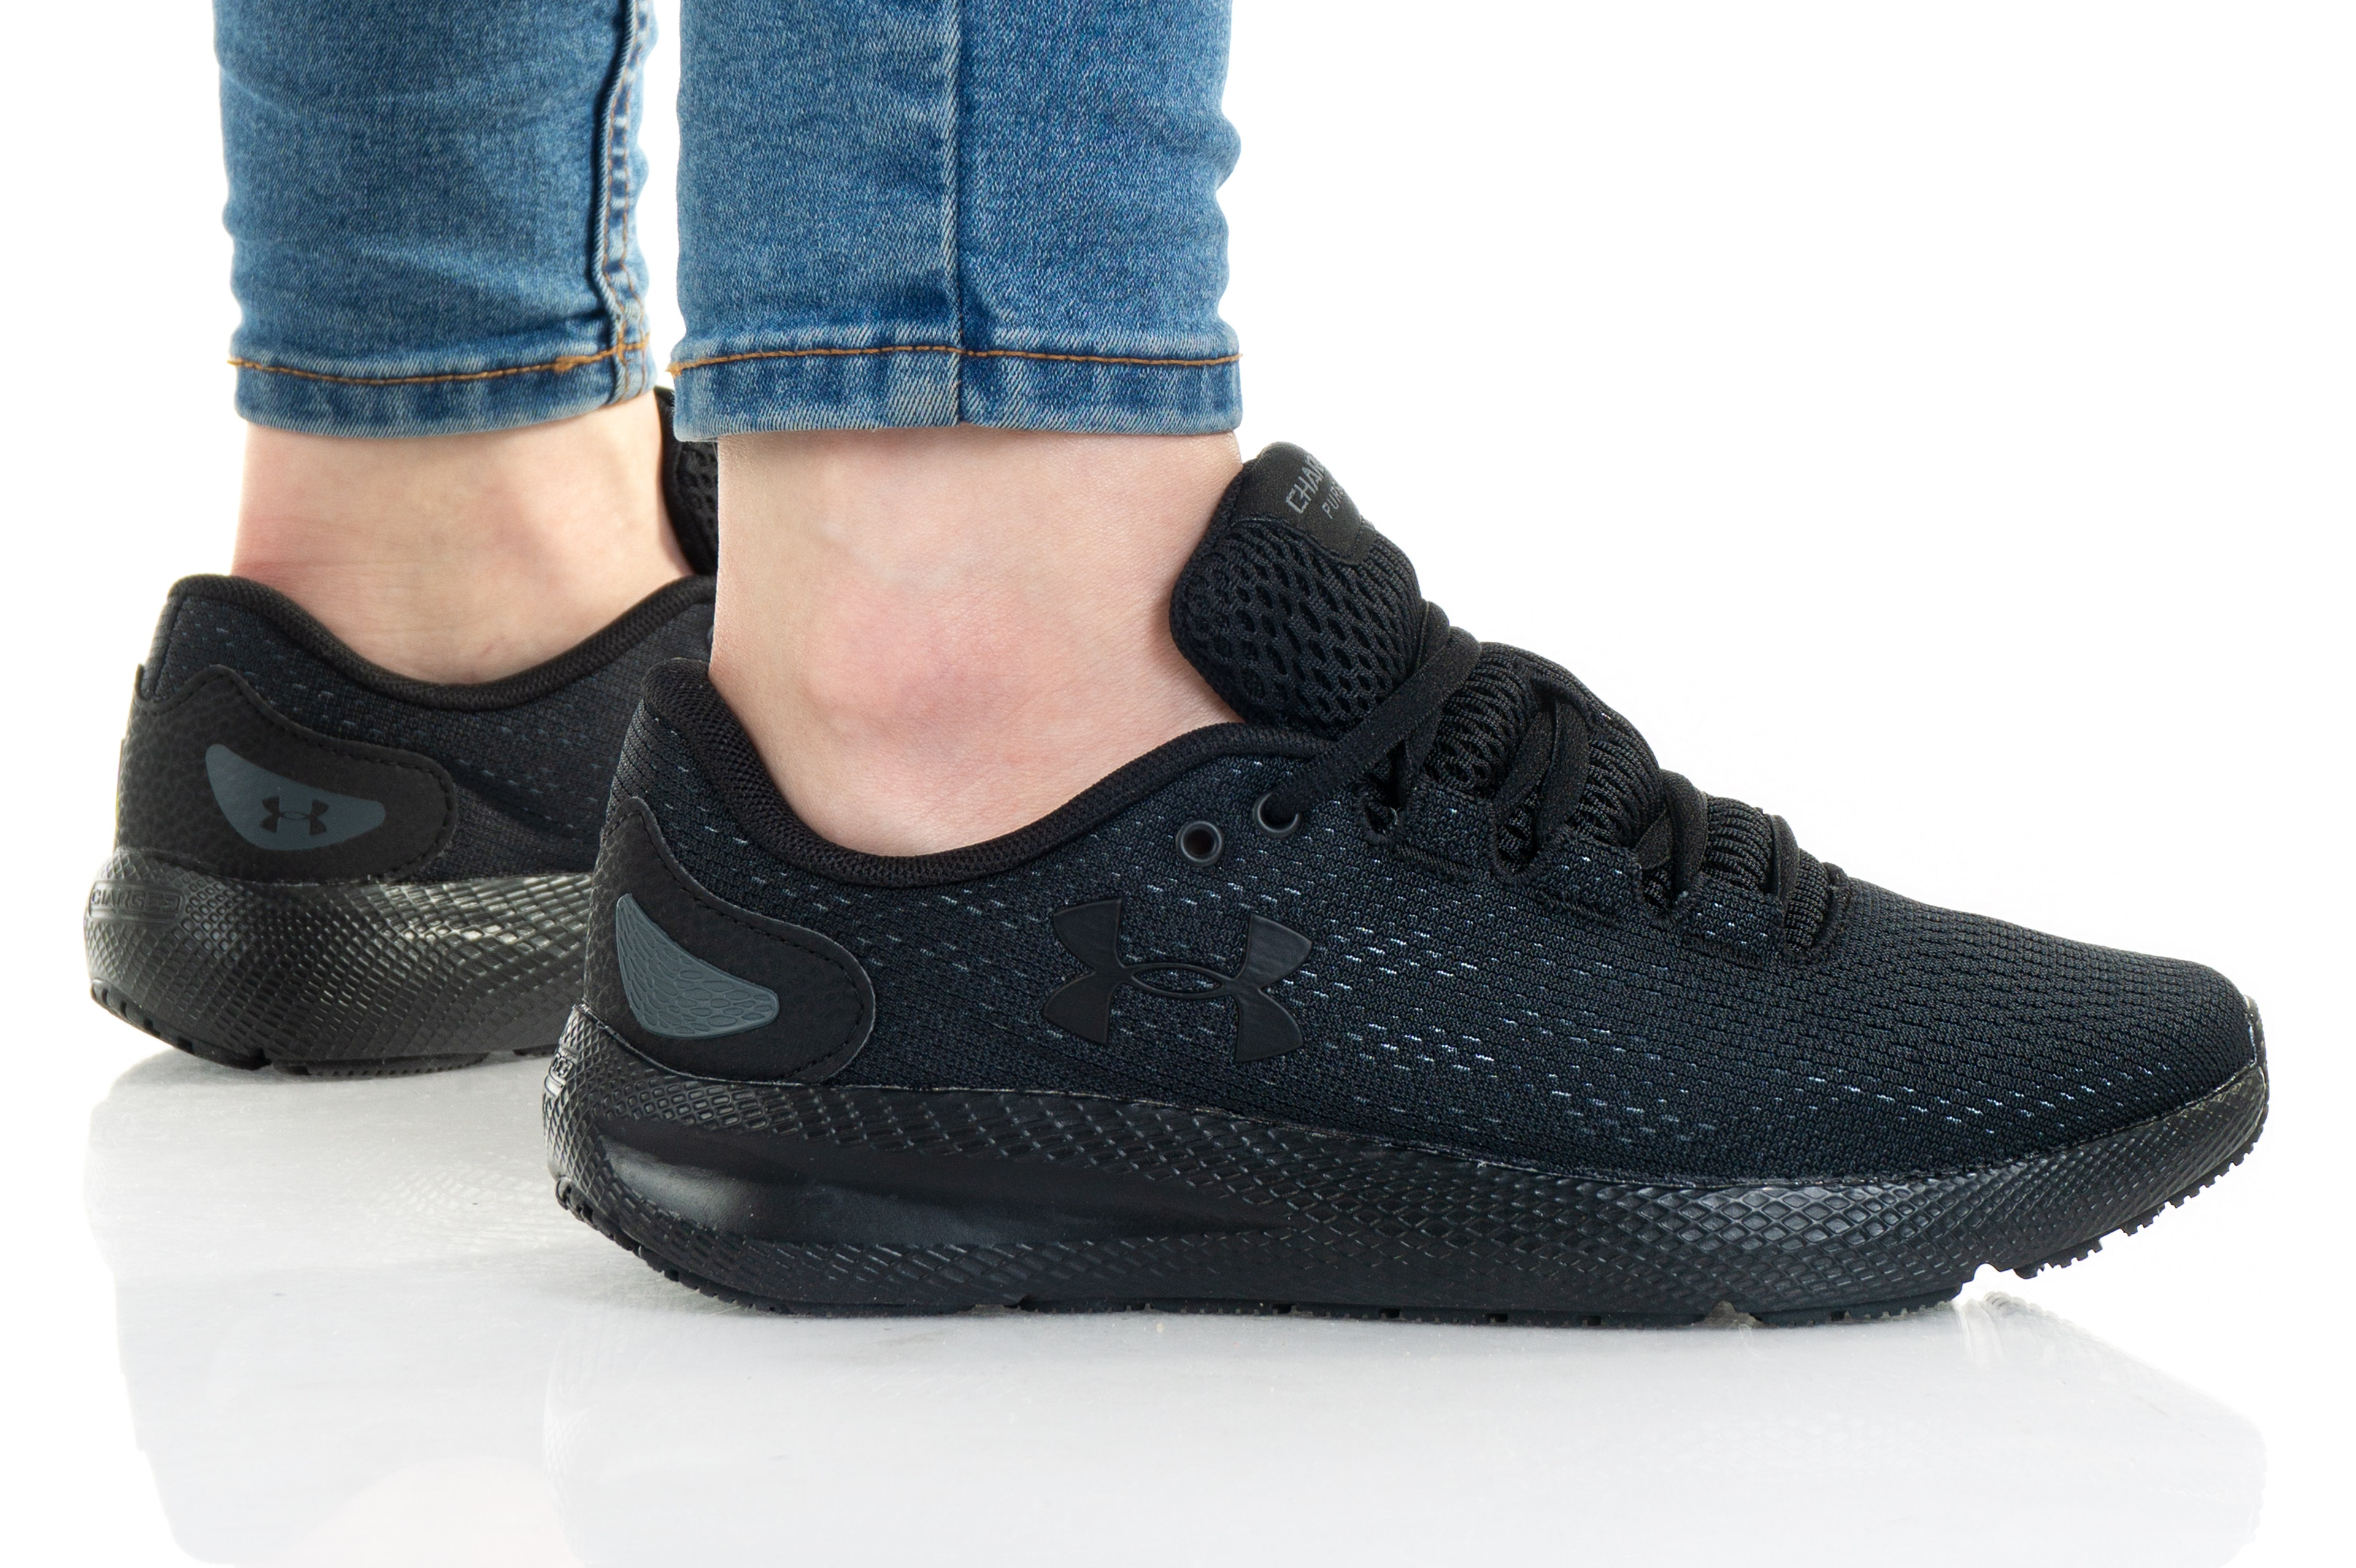 Under Armour Charged Pursuit 2 3022604-002